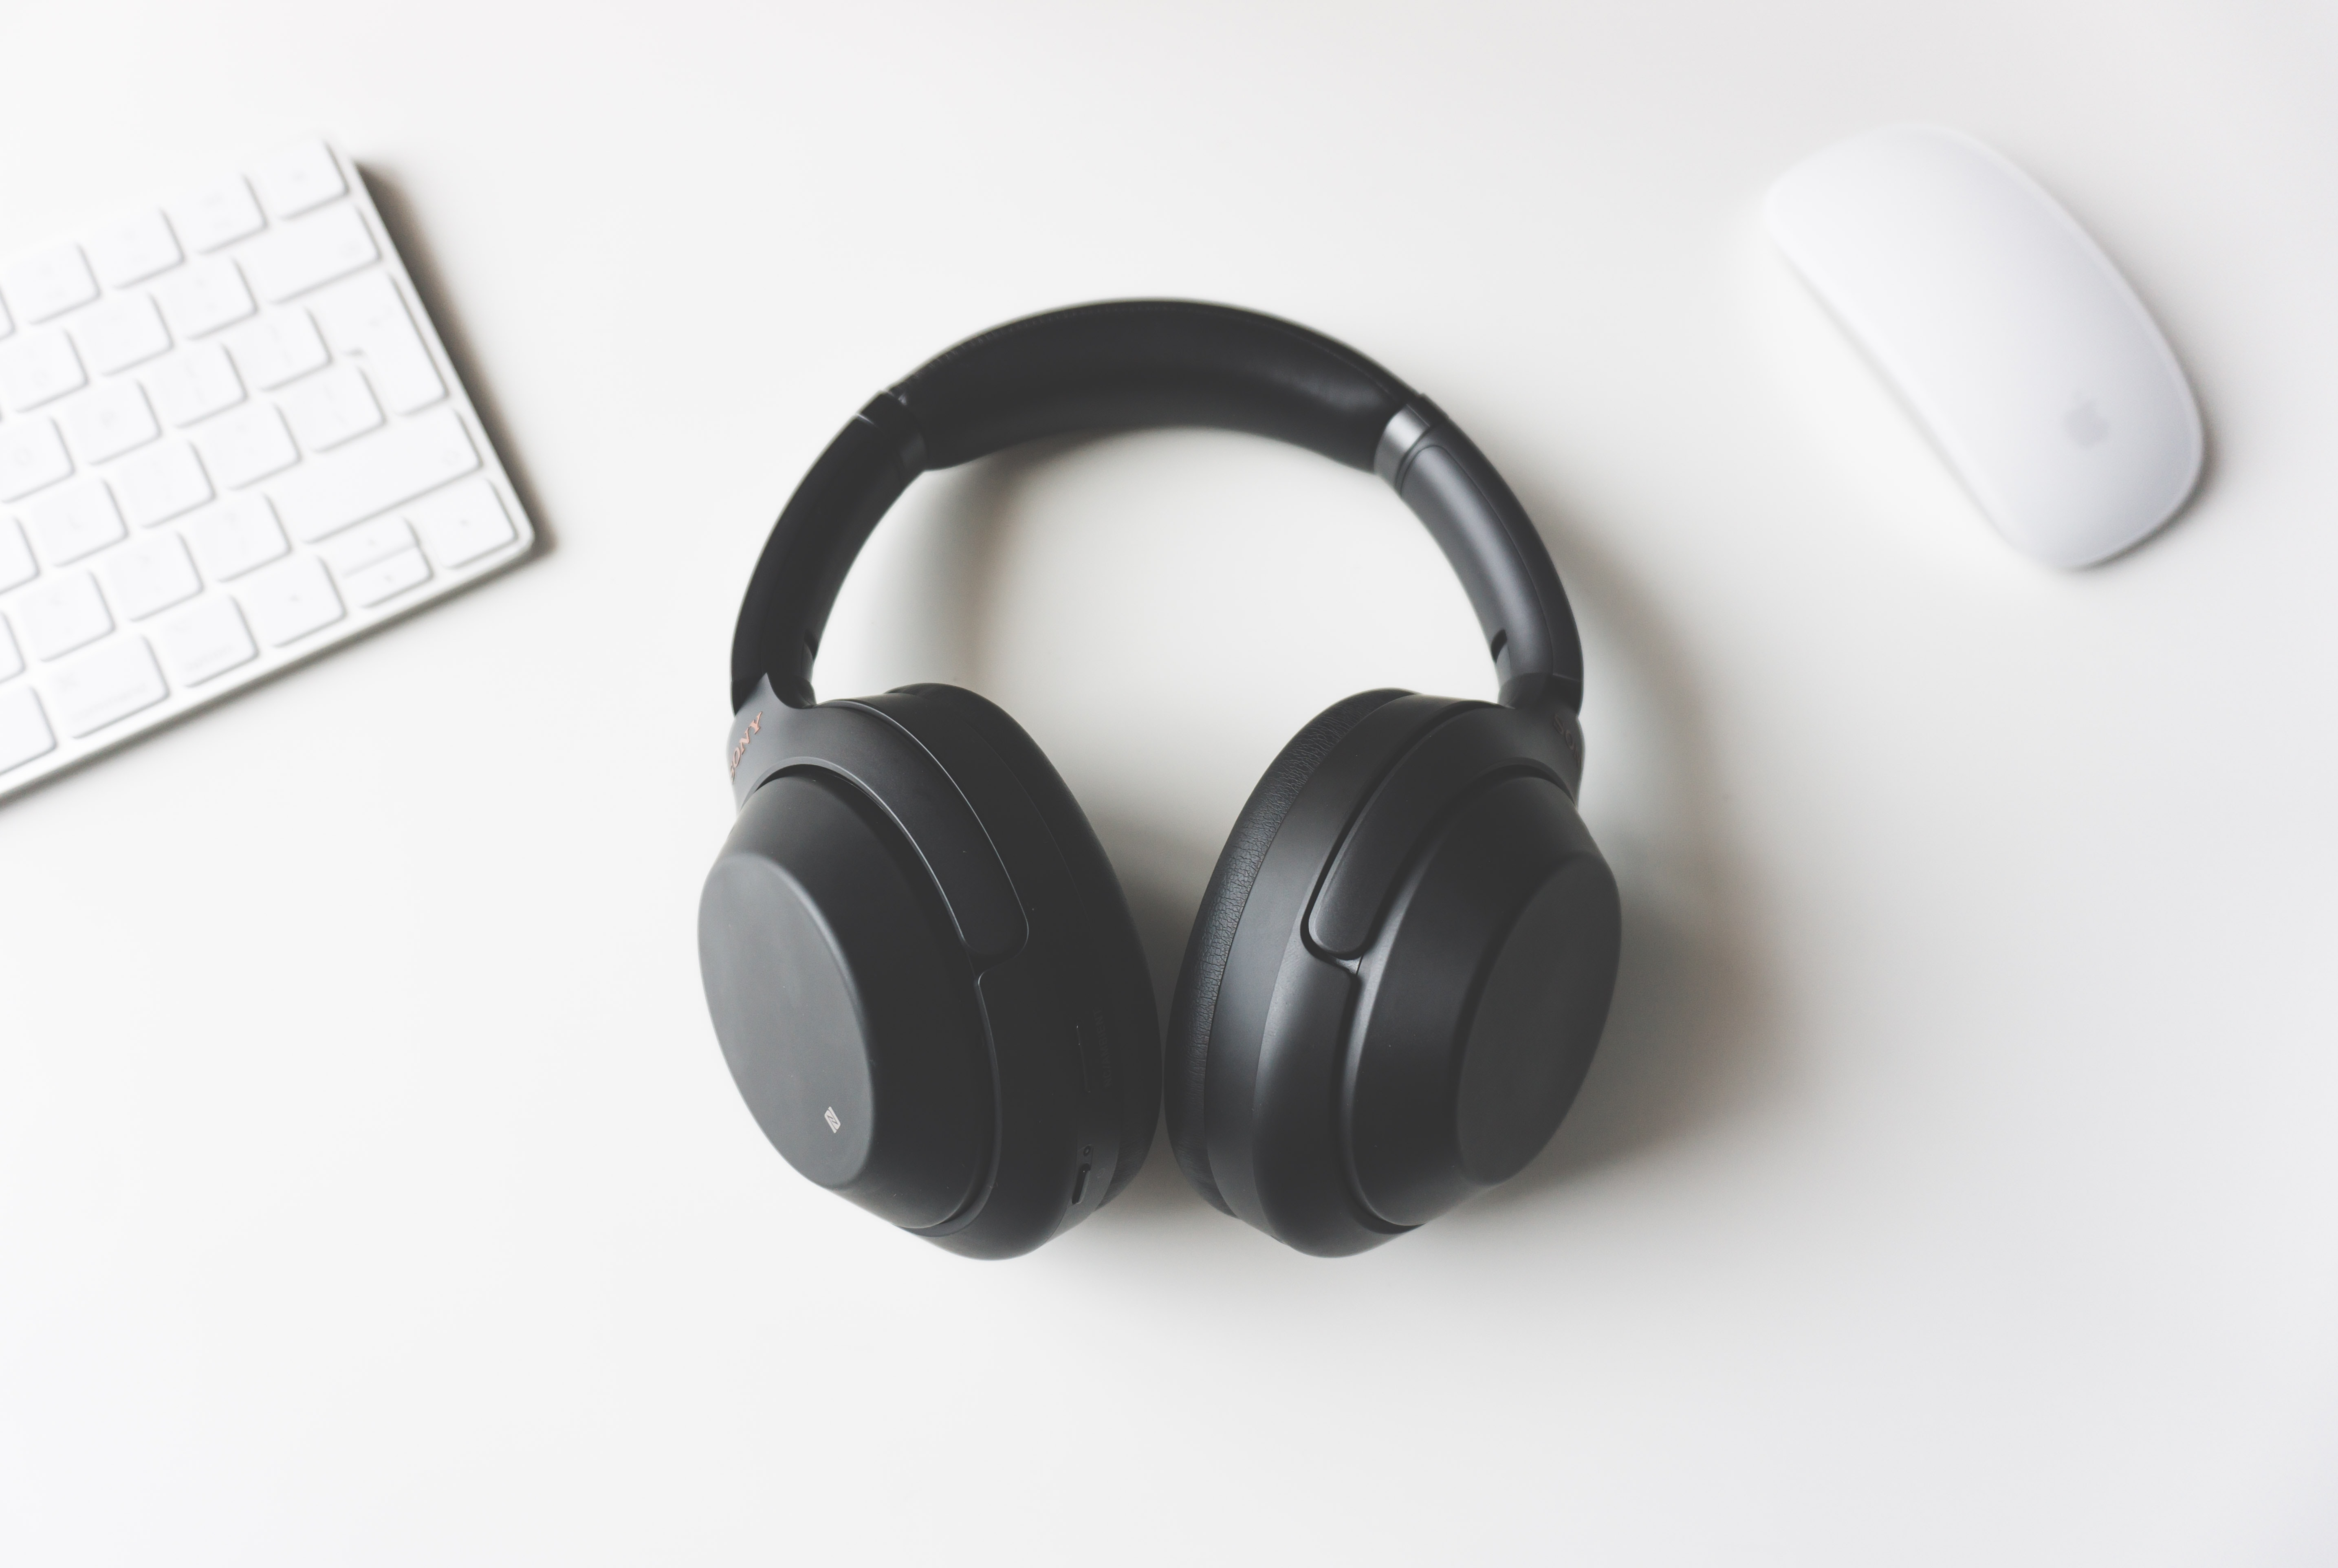 Home Office Headphones to Work From Home